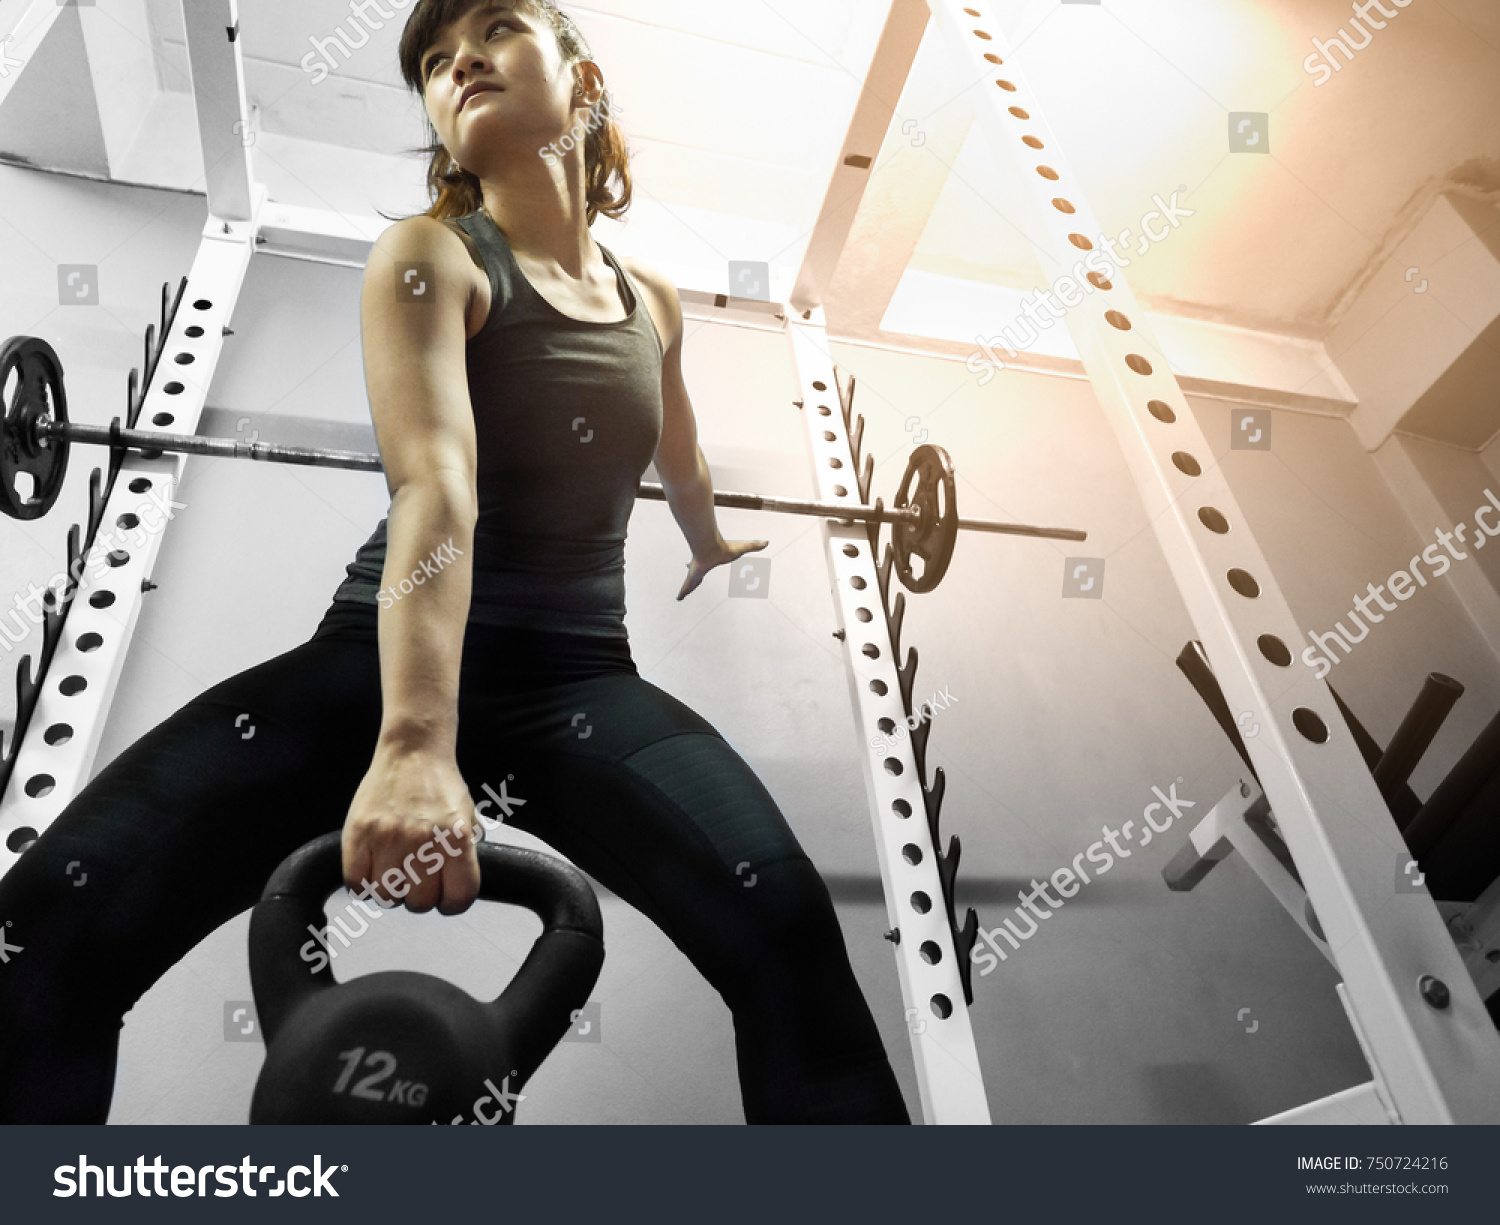 Kettlebell Bodybuilding Healthy Asian Woman Lifting Kettlebell Weight Stock Photo Edit